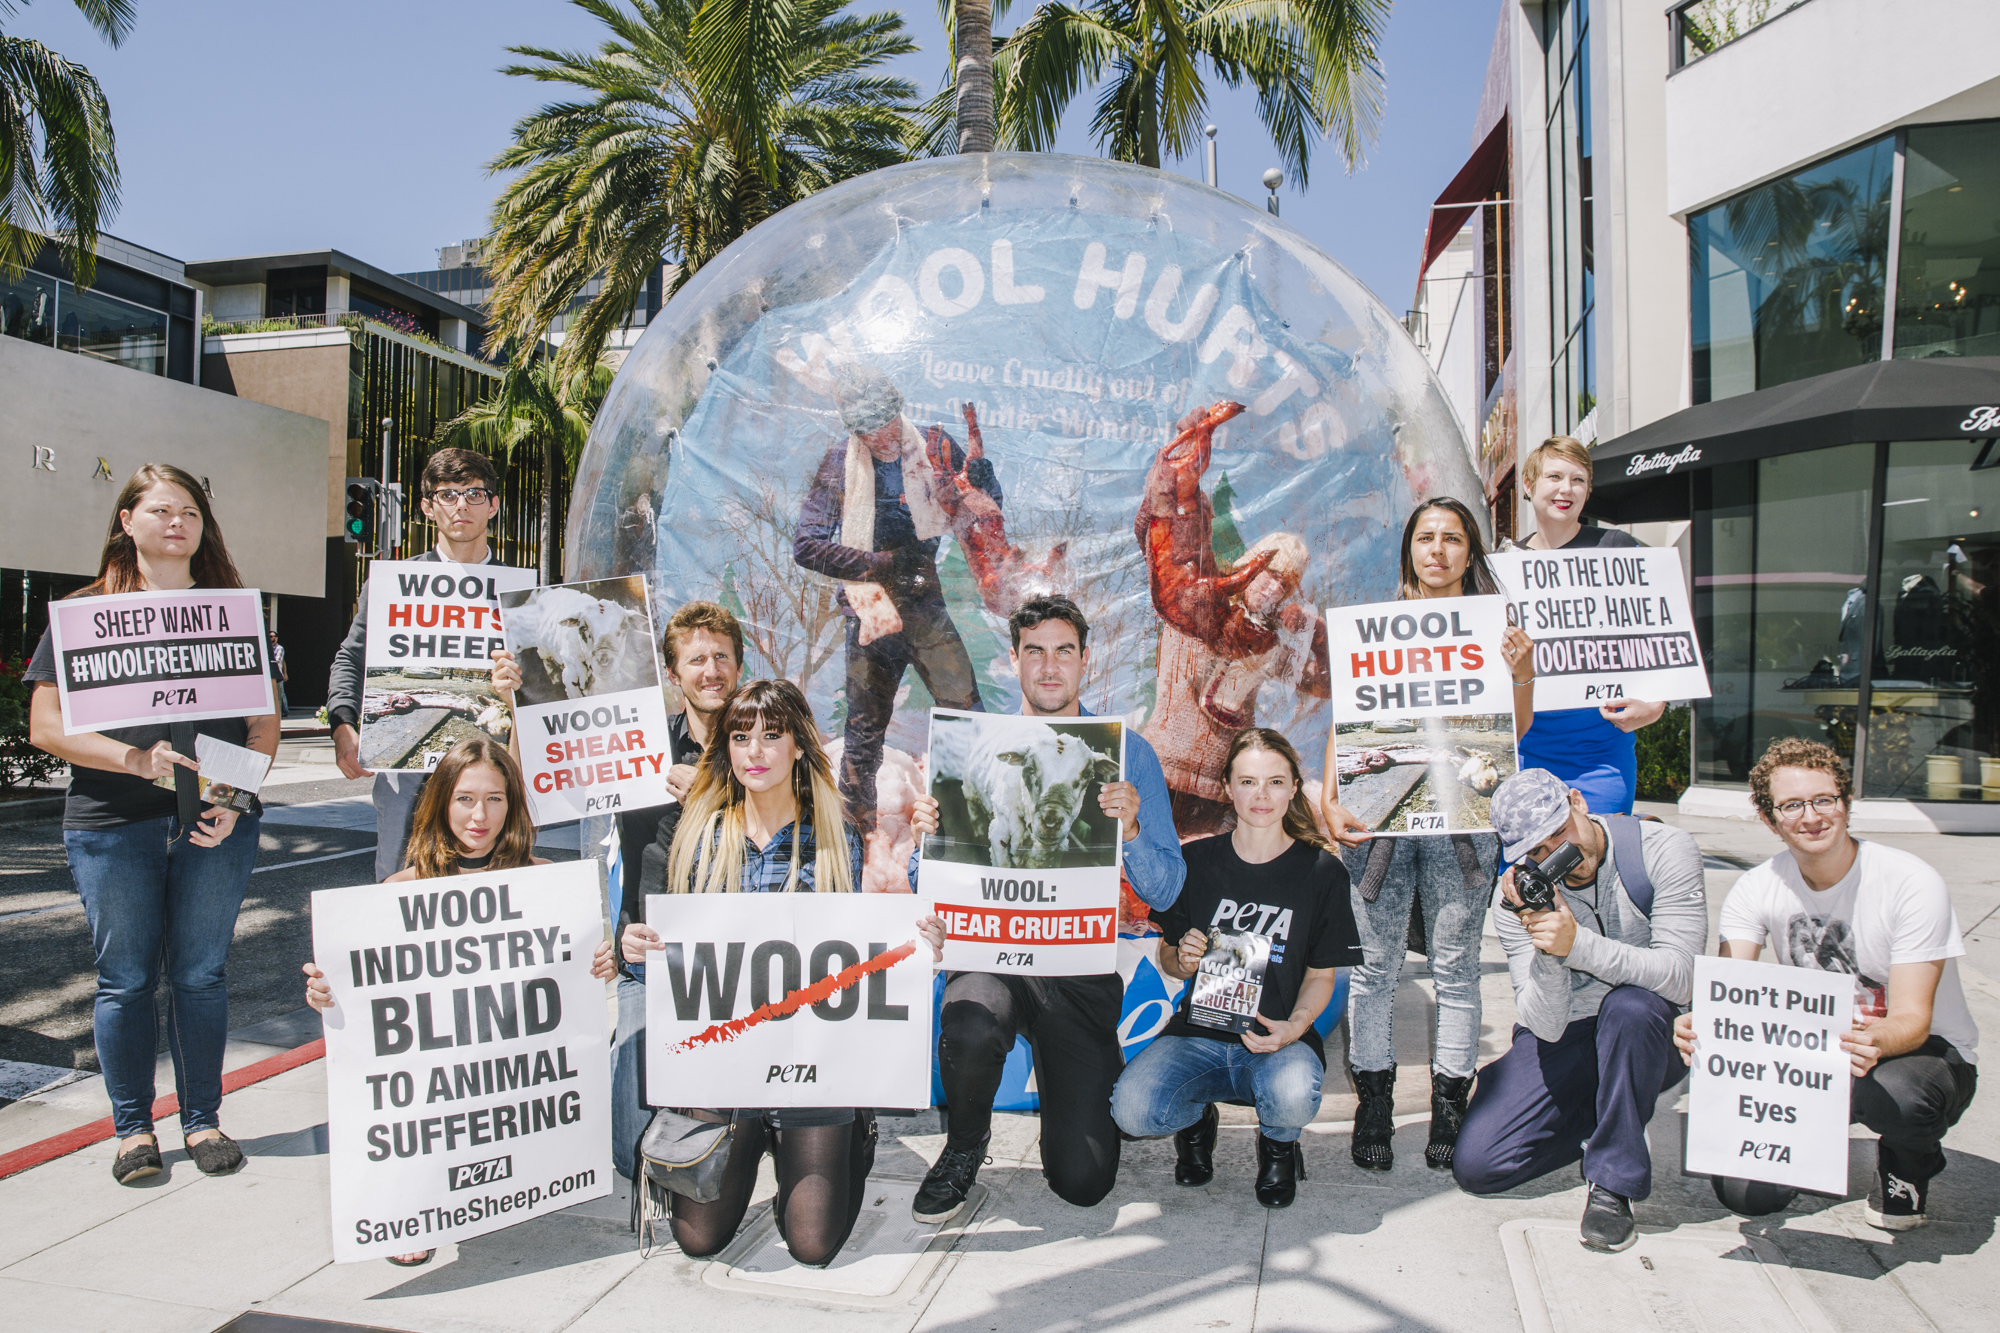 PETA staffers stand outside with signs at a wool protest in Los Angeles. Two people beating up fake bloody sheep are inside a giant inflatable snow globe behind them.